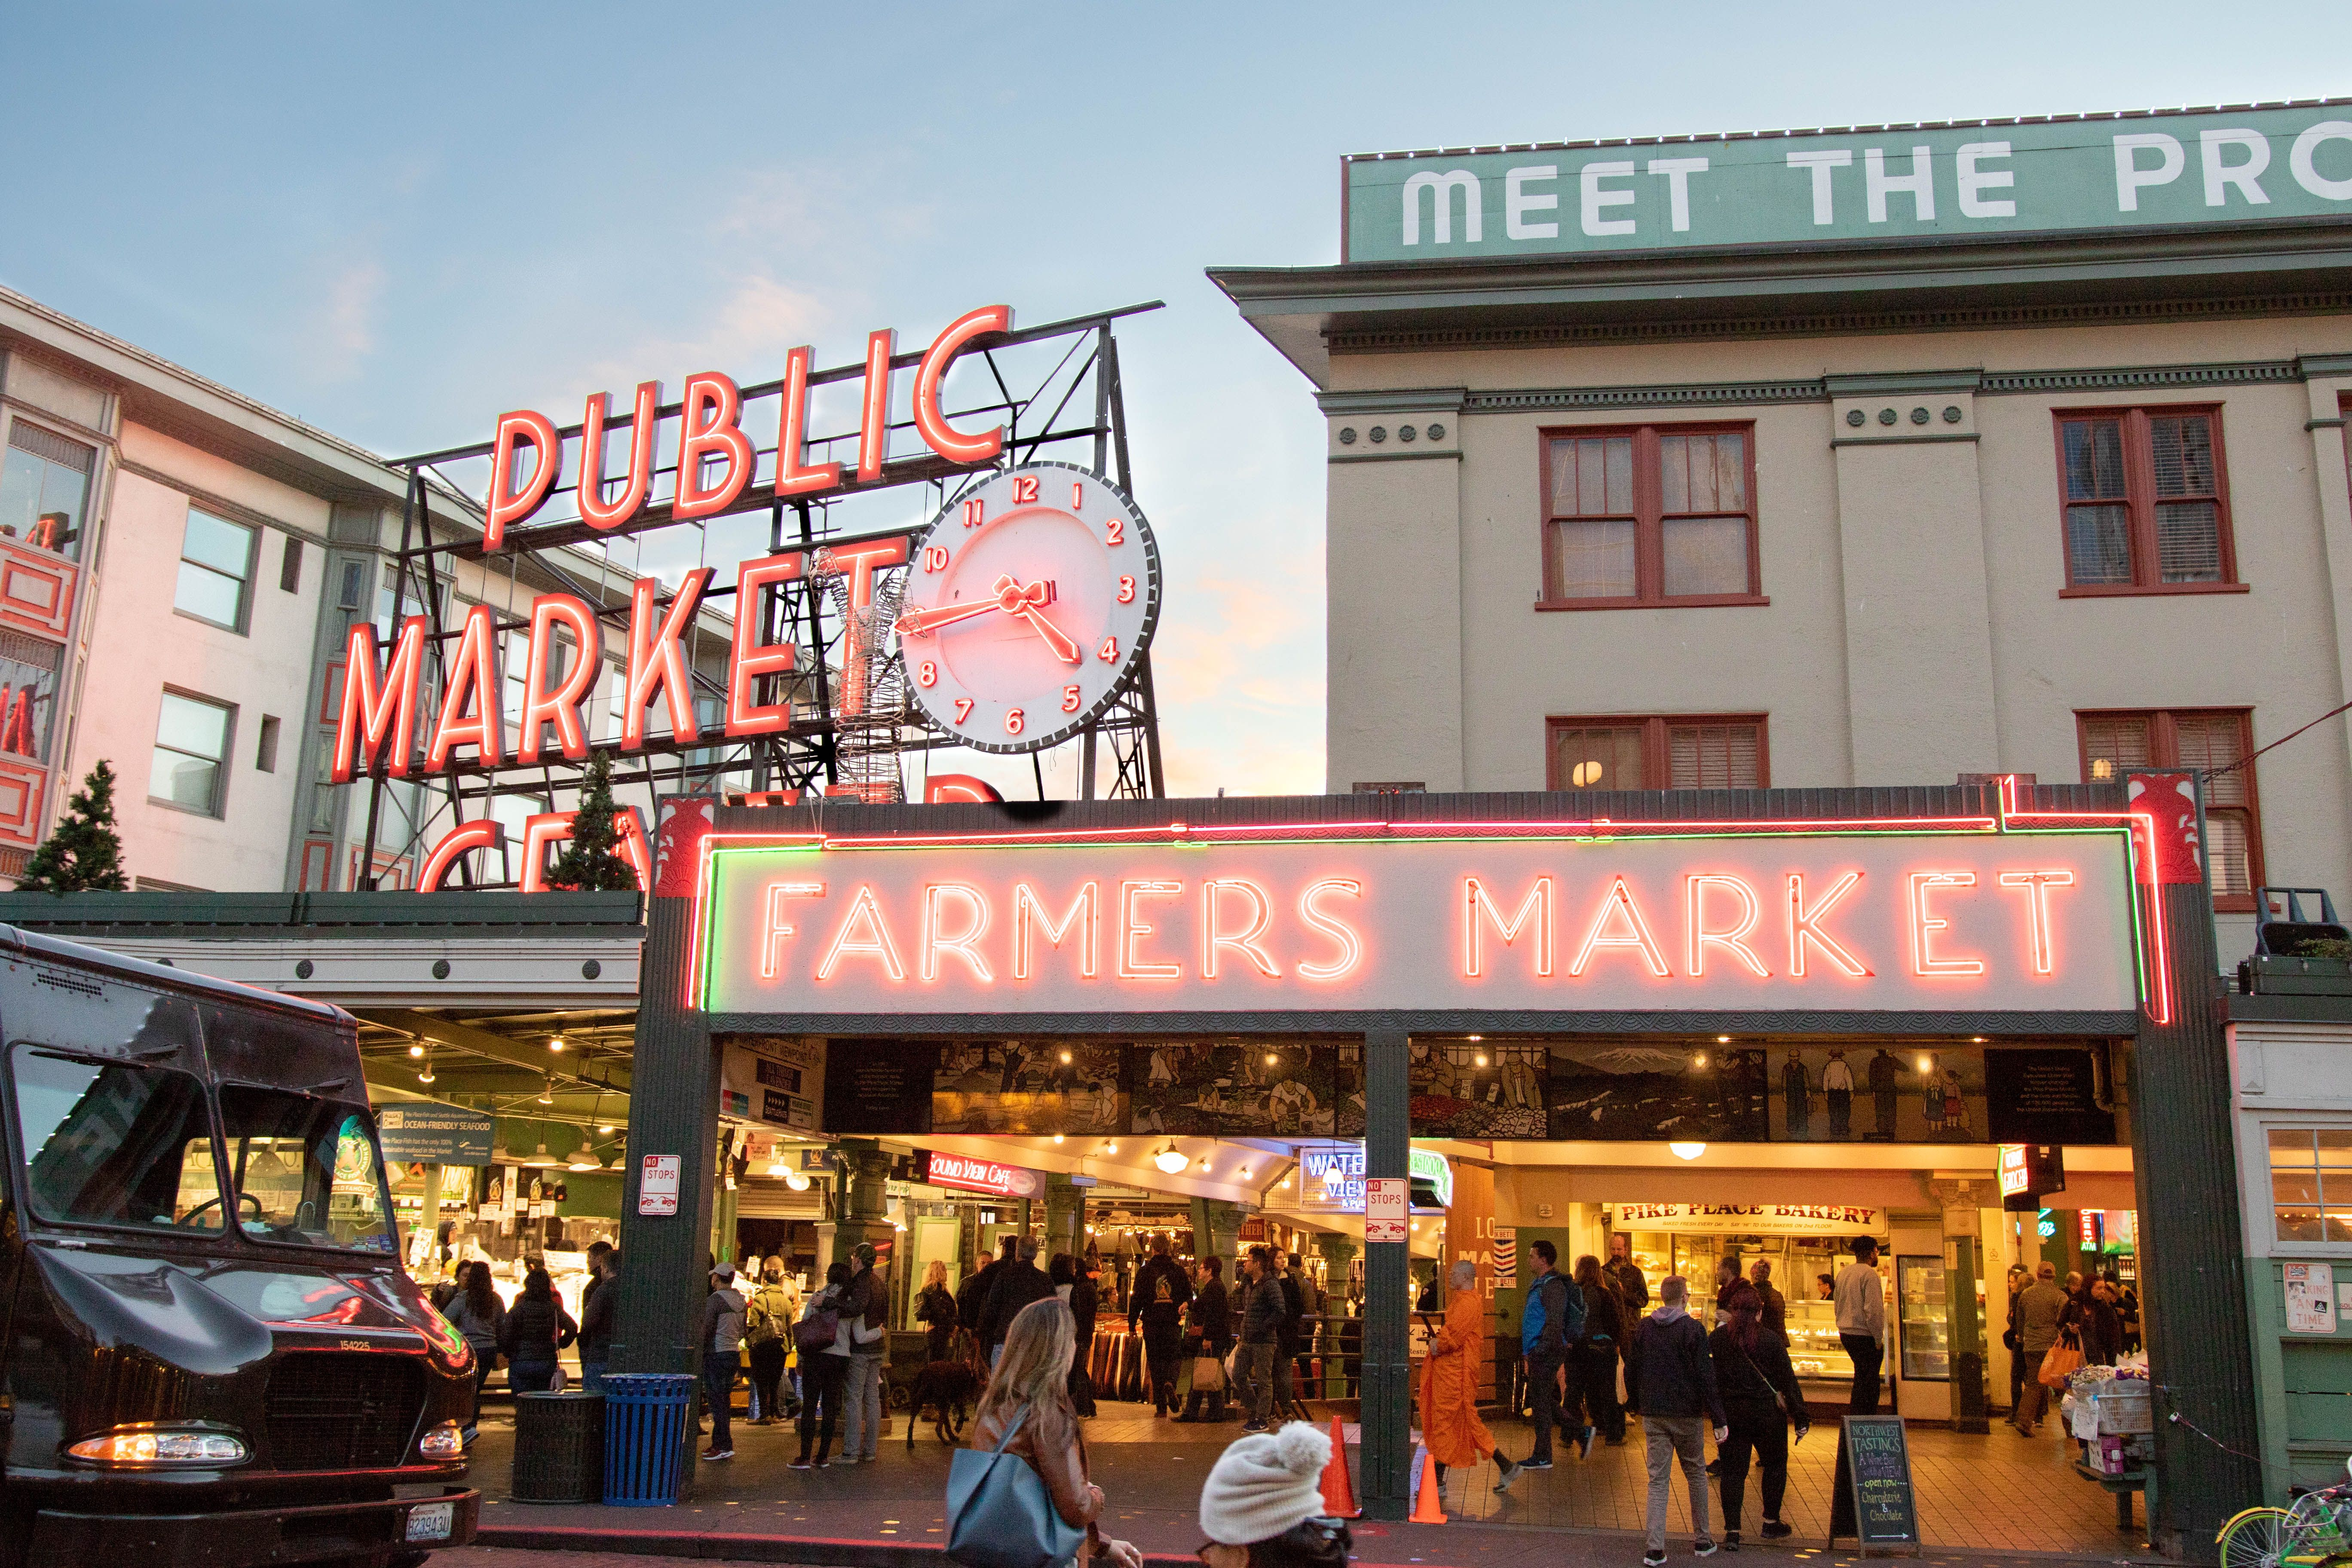 seattle pike market place things fun tripsavvy washington pharmacology cardiology geriatrics primary update care stream